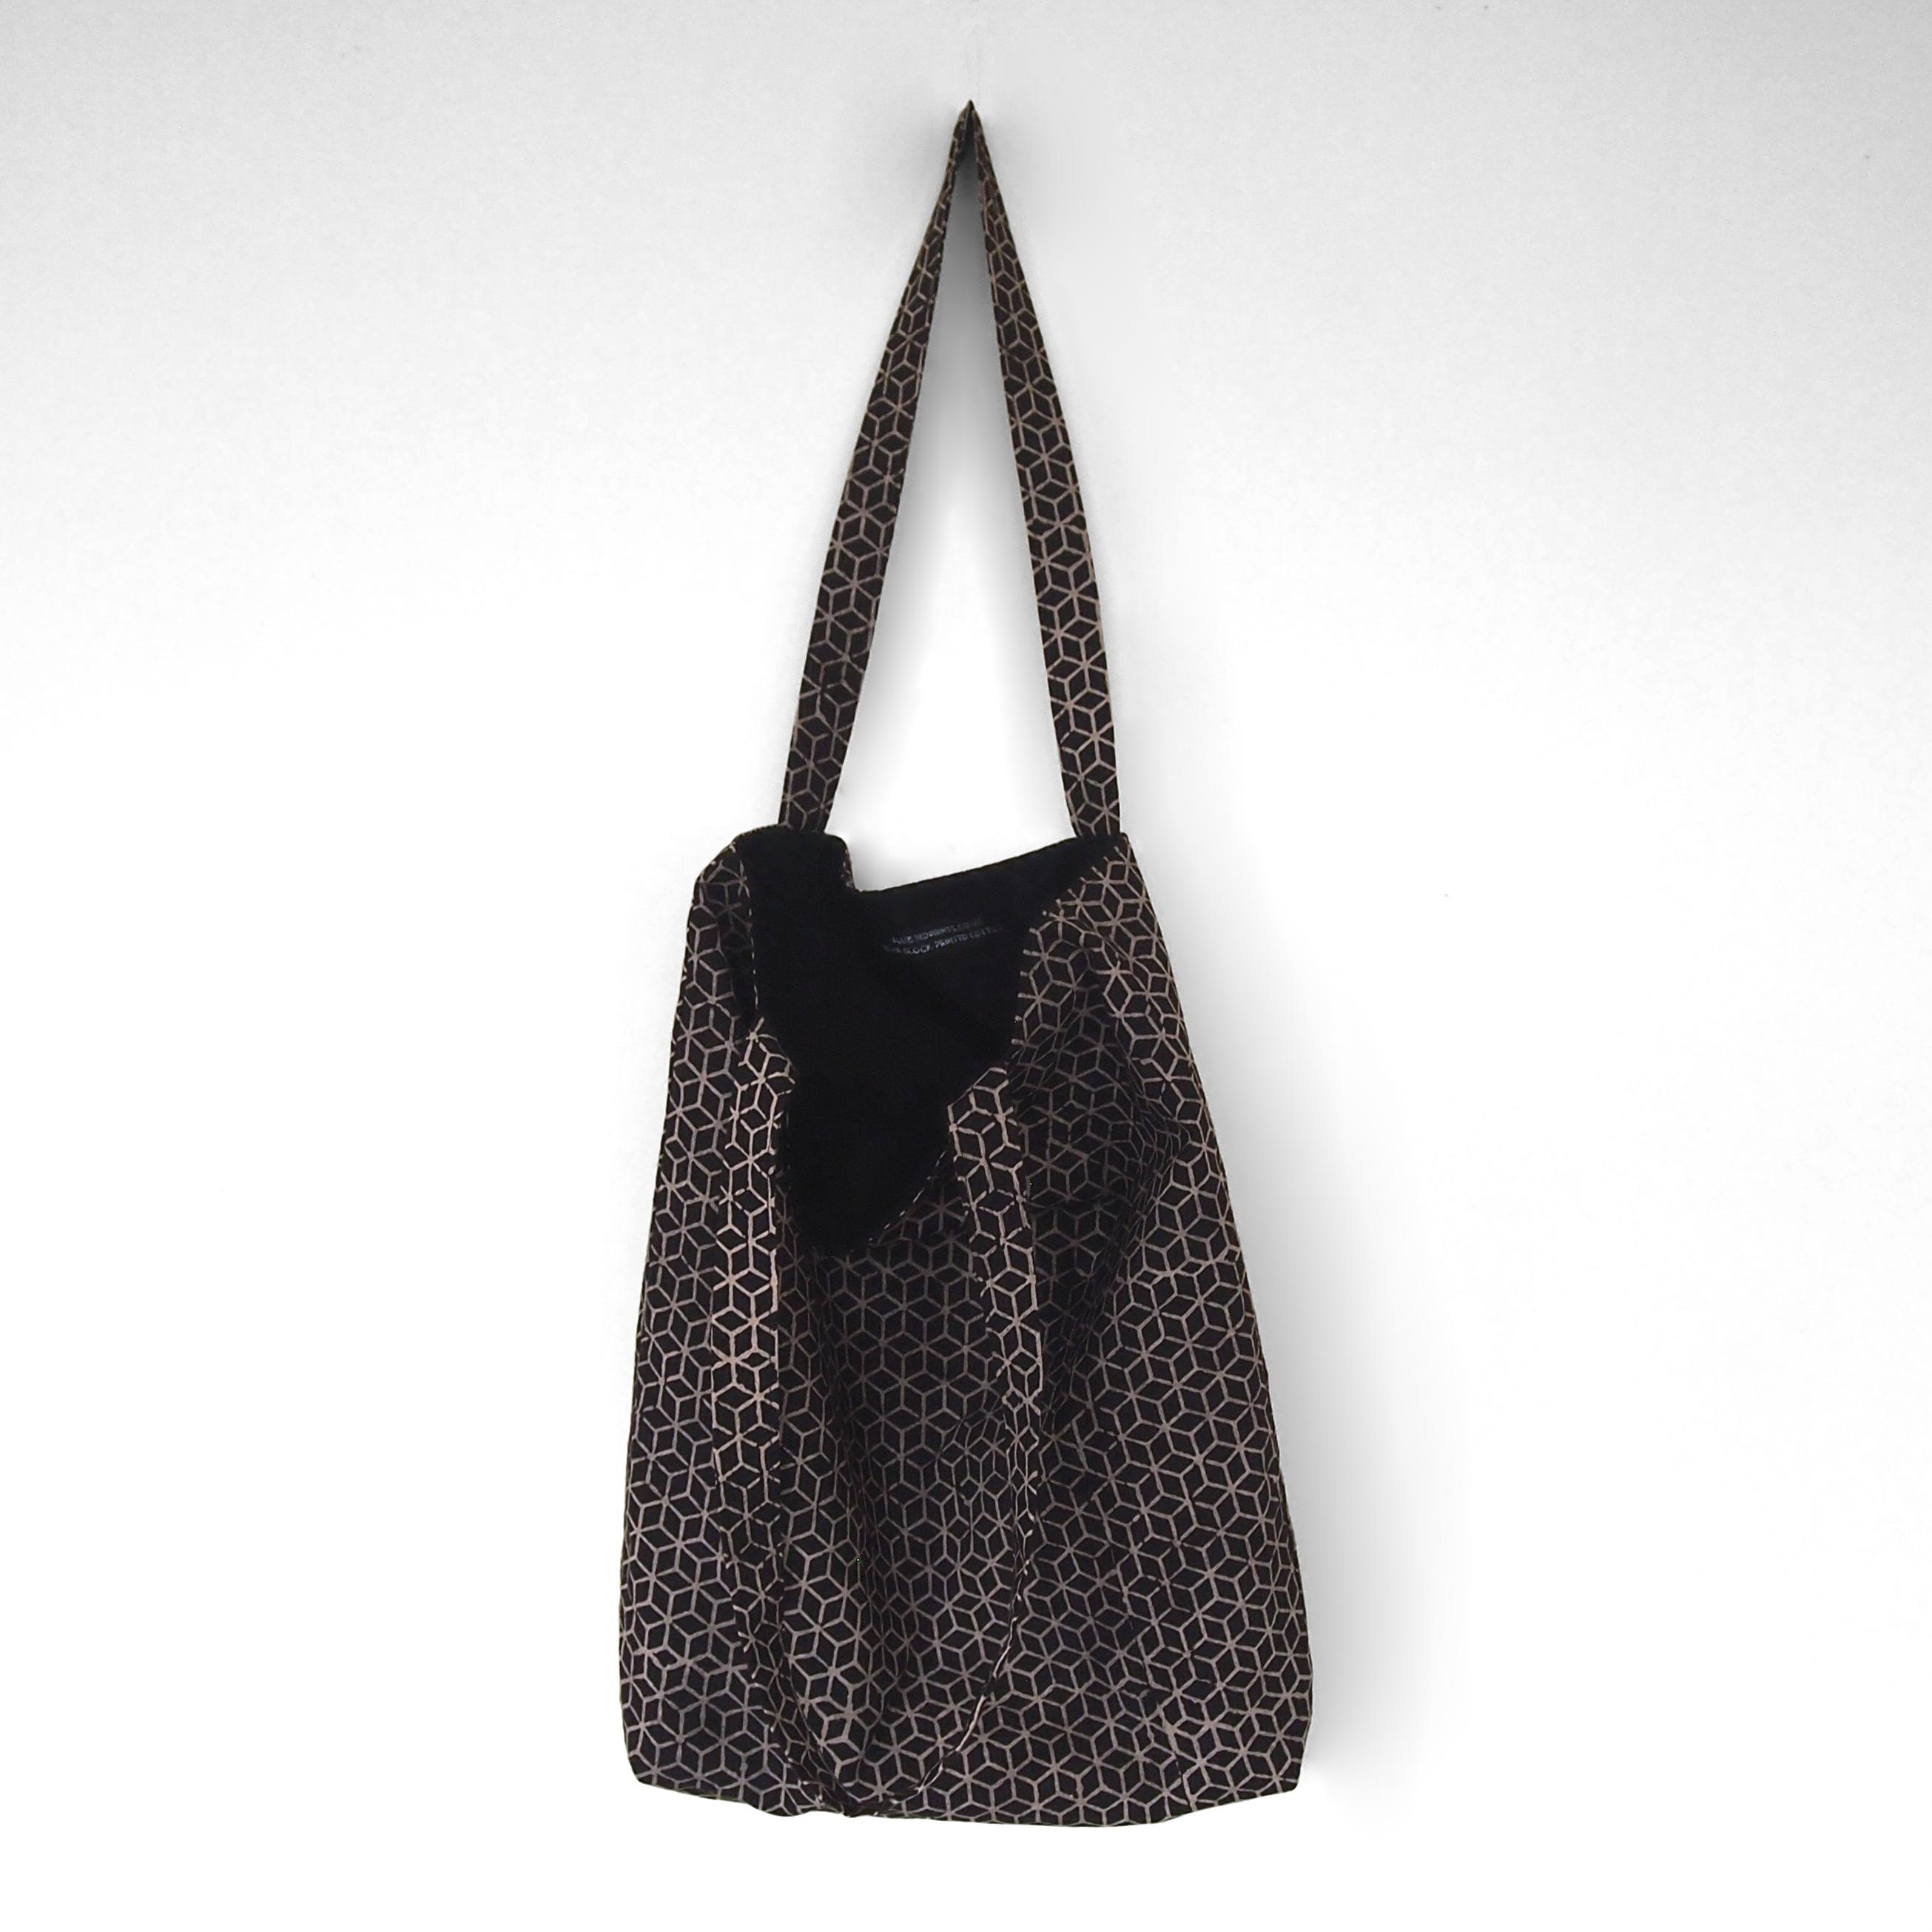 block printed cotton tote bag, natural dye, black, beige tumbling block design, lined with black cotton, open